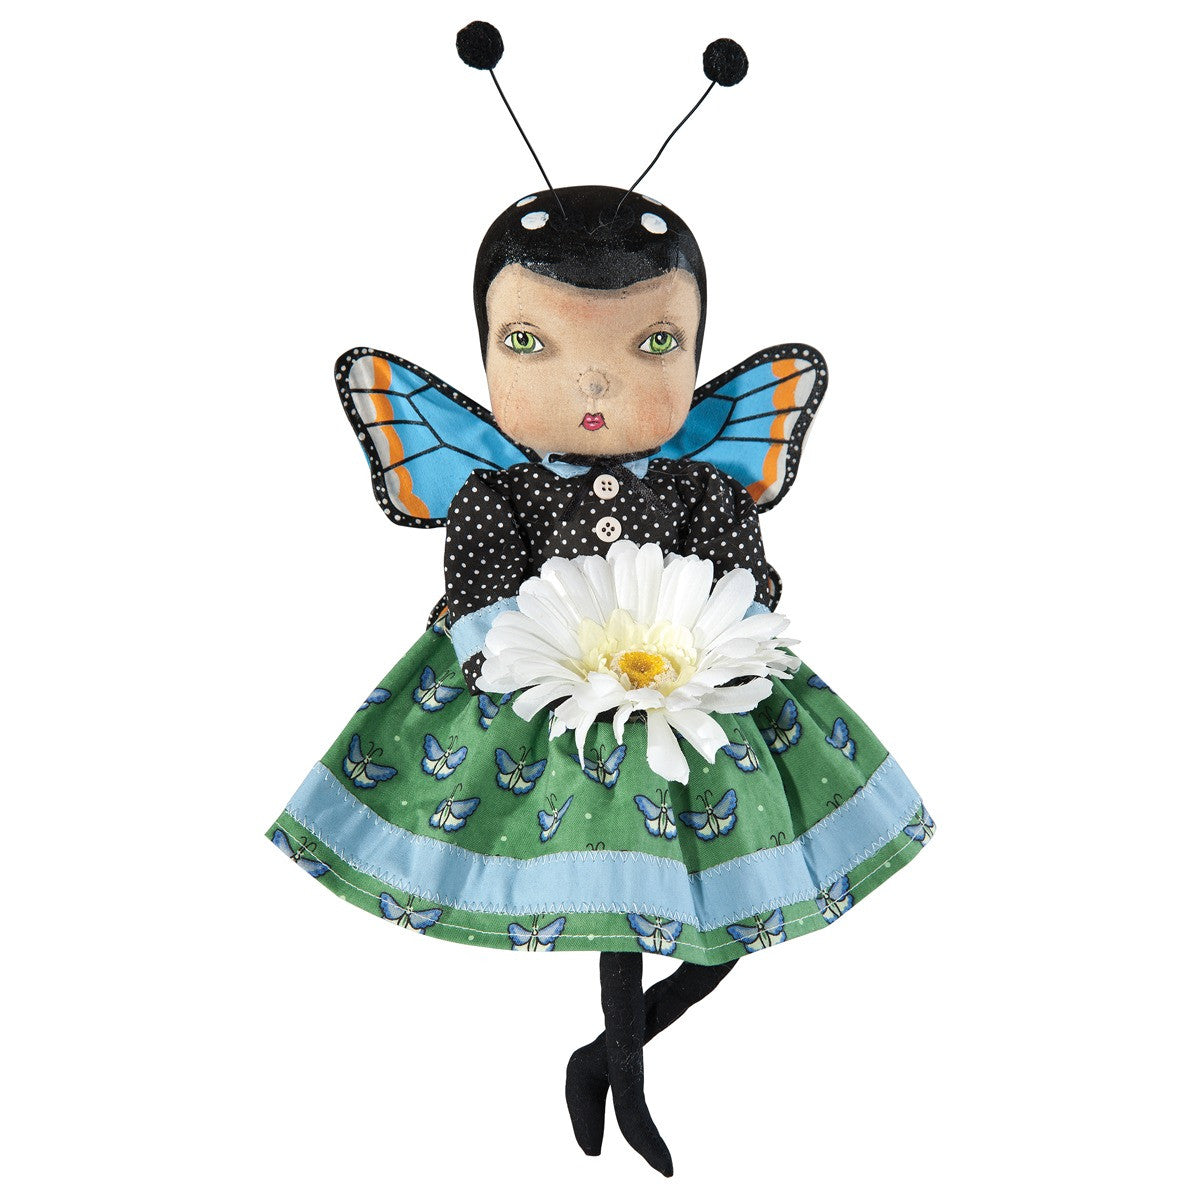 April Butterfly Girl Doll by Joe Spencer